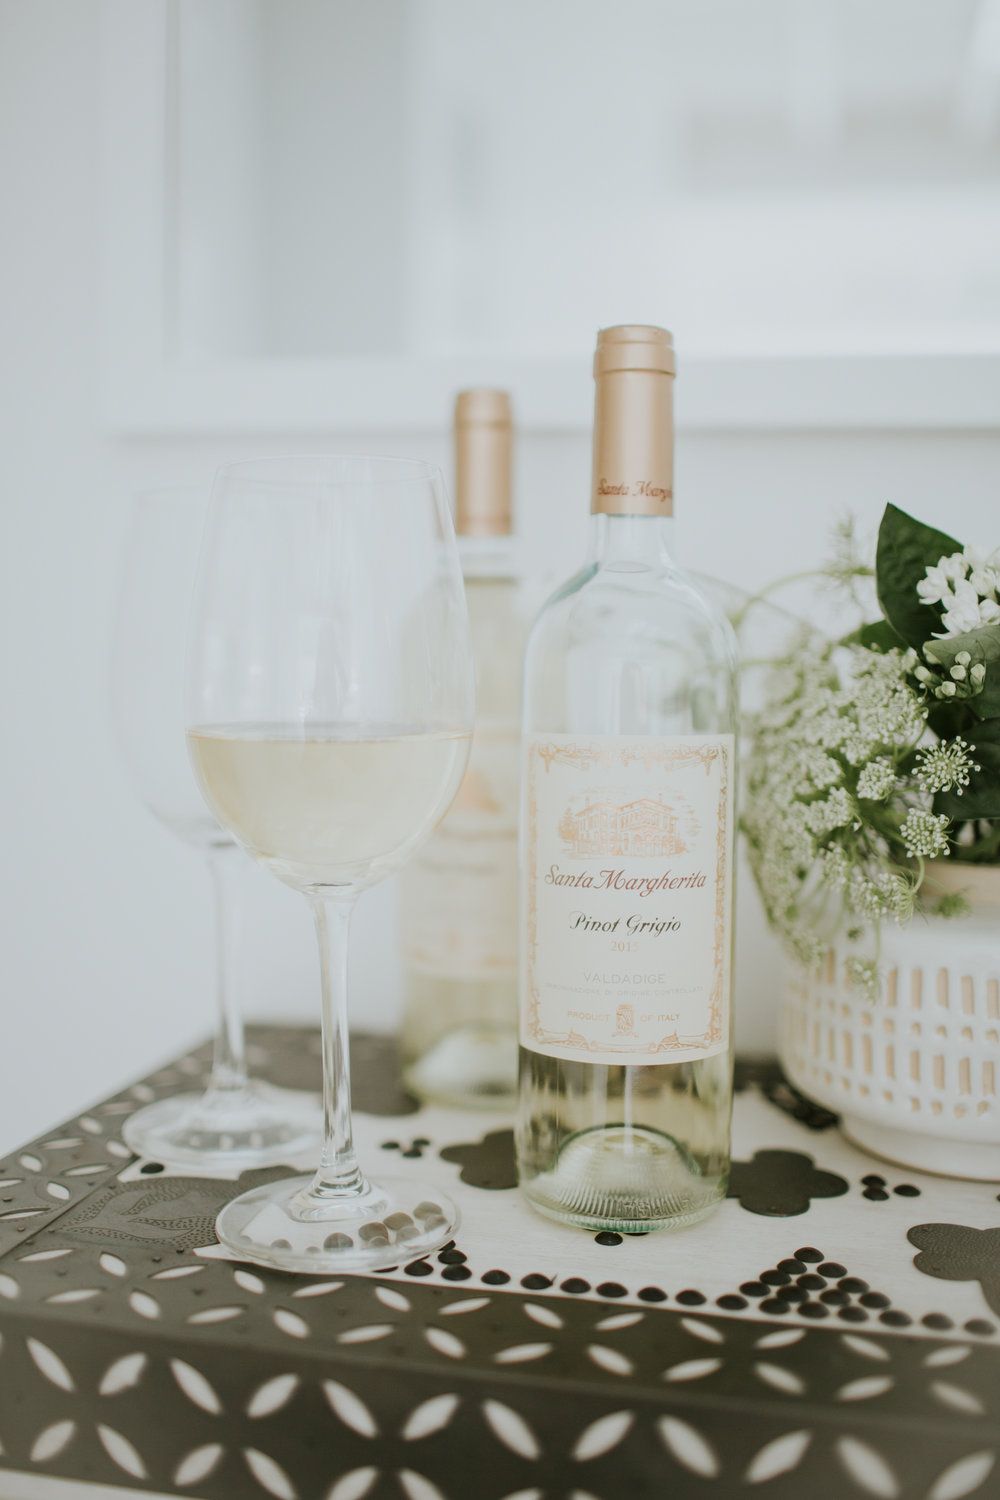 Santa Margherita Pinot Grigio, a fave for summer parties! | A Fabulous Fete